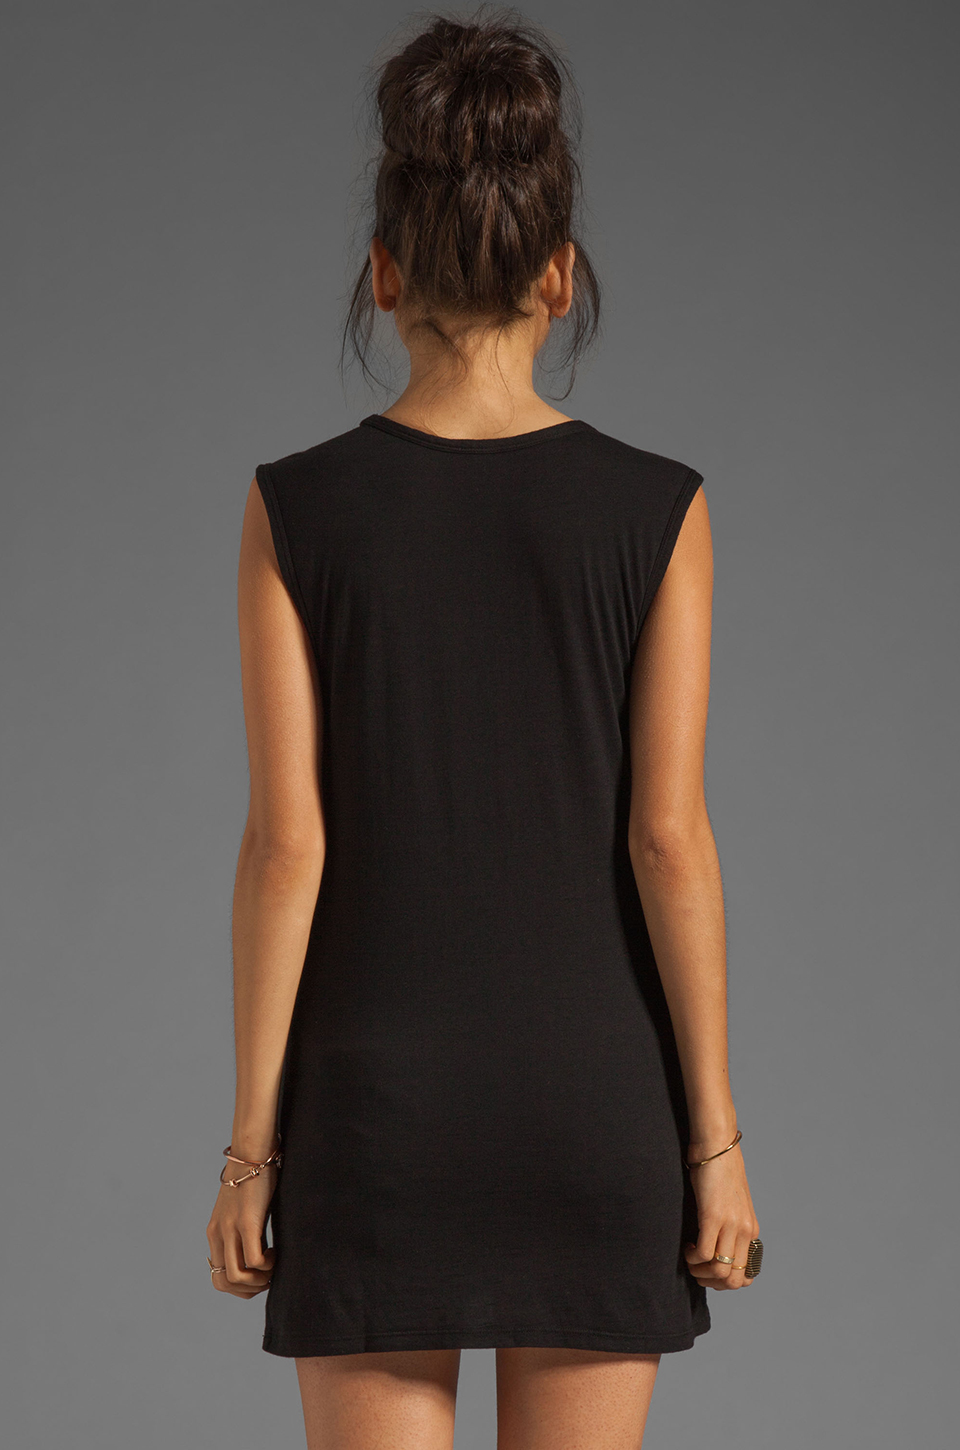 Bobi Slub Pocket Tank in Black